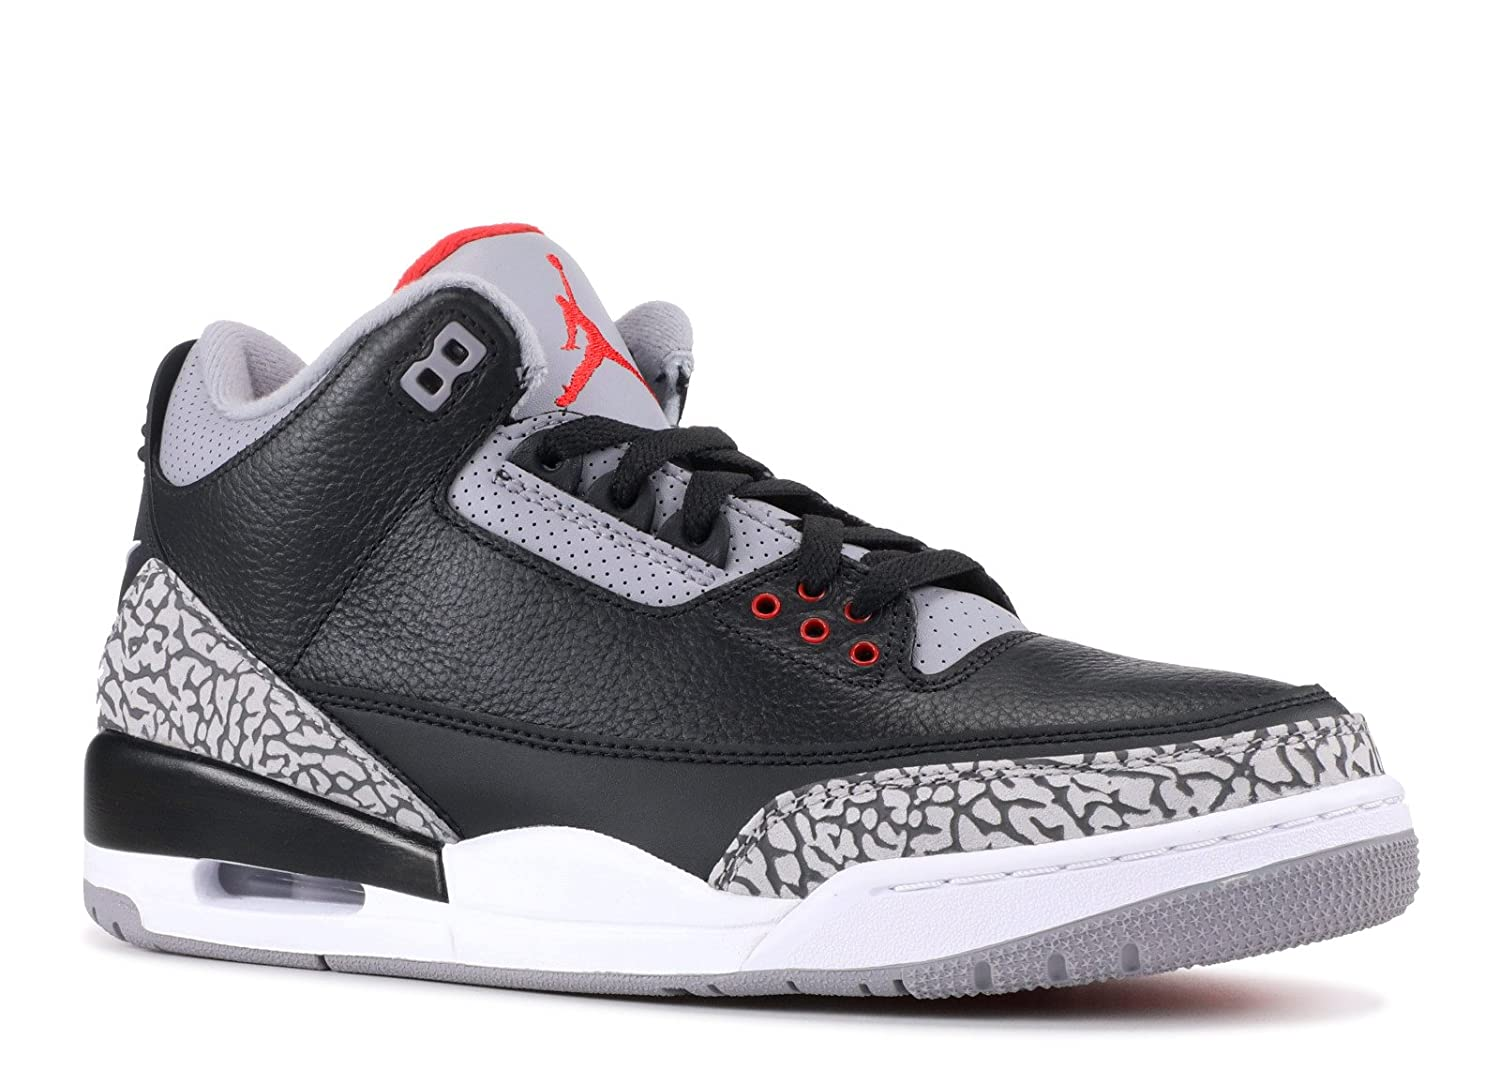 release date: cec2c c7b36 Nike Mens Air Jordan 3 Retro OG Black Cement Black/Cement Leather Size 15